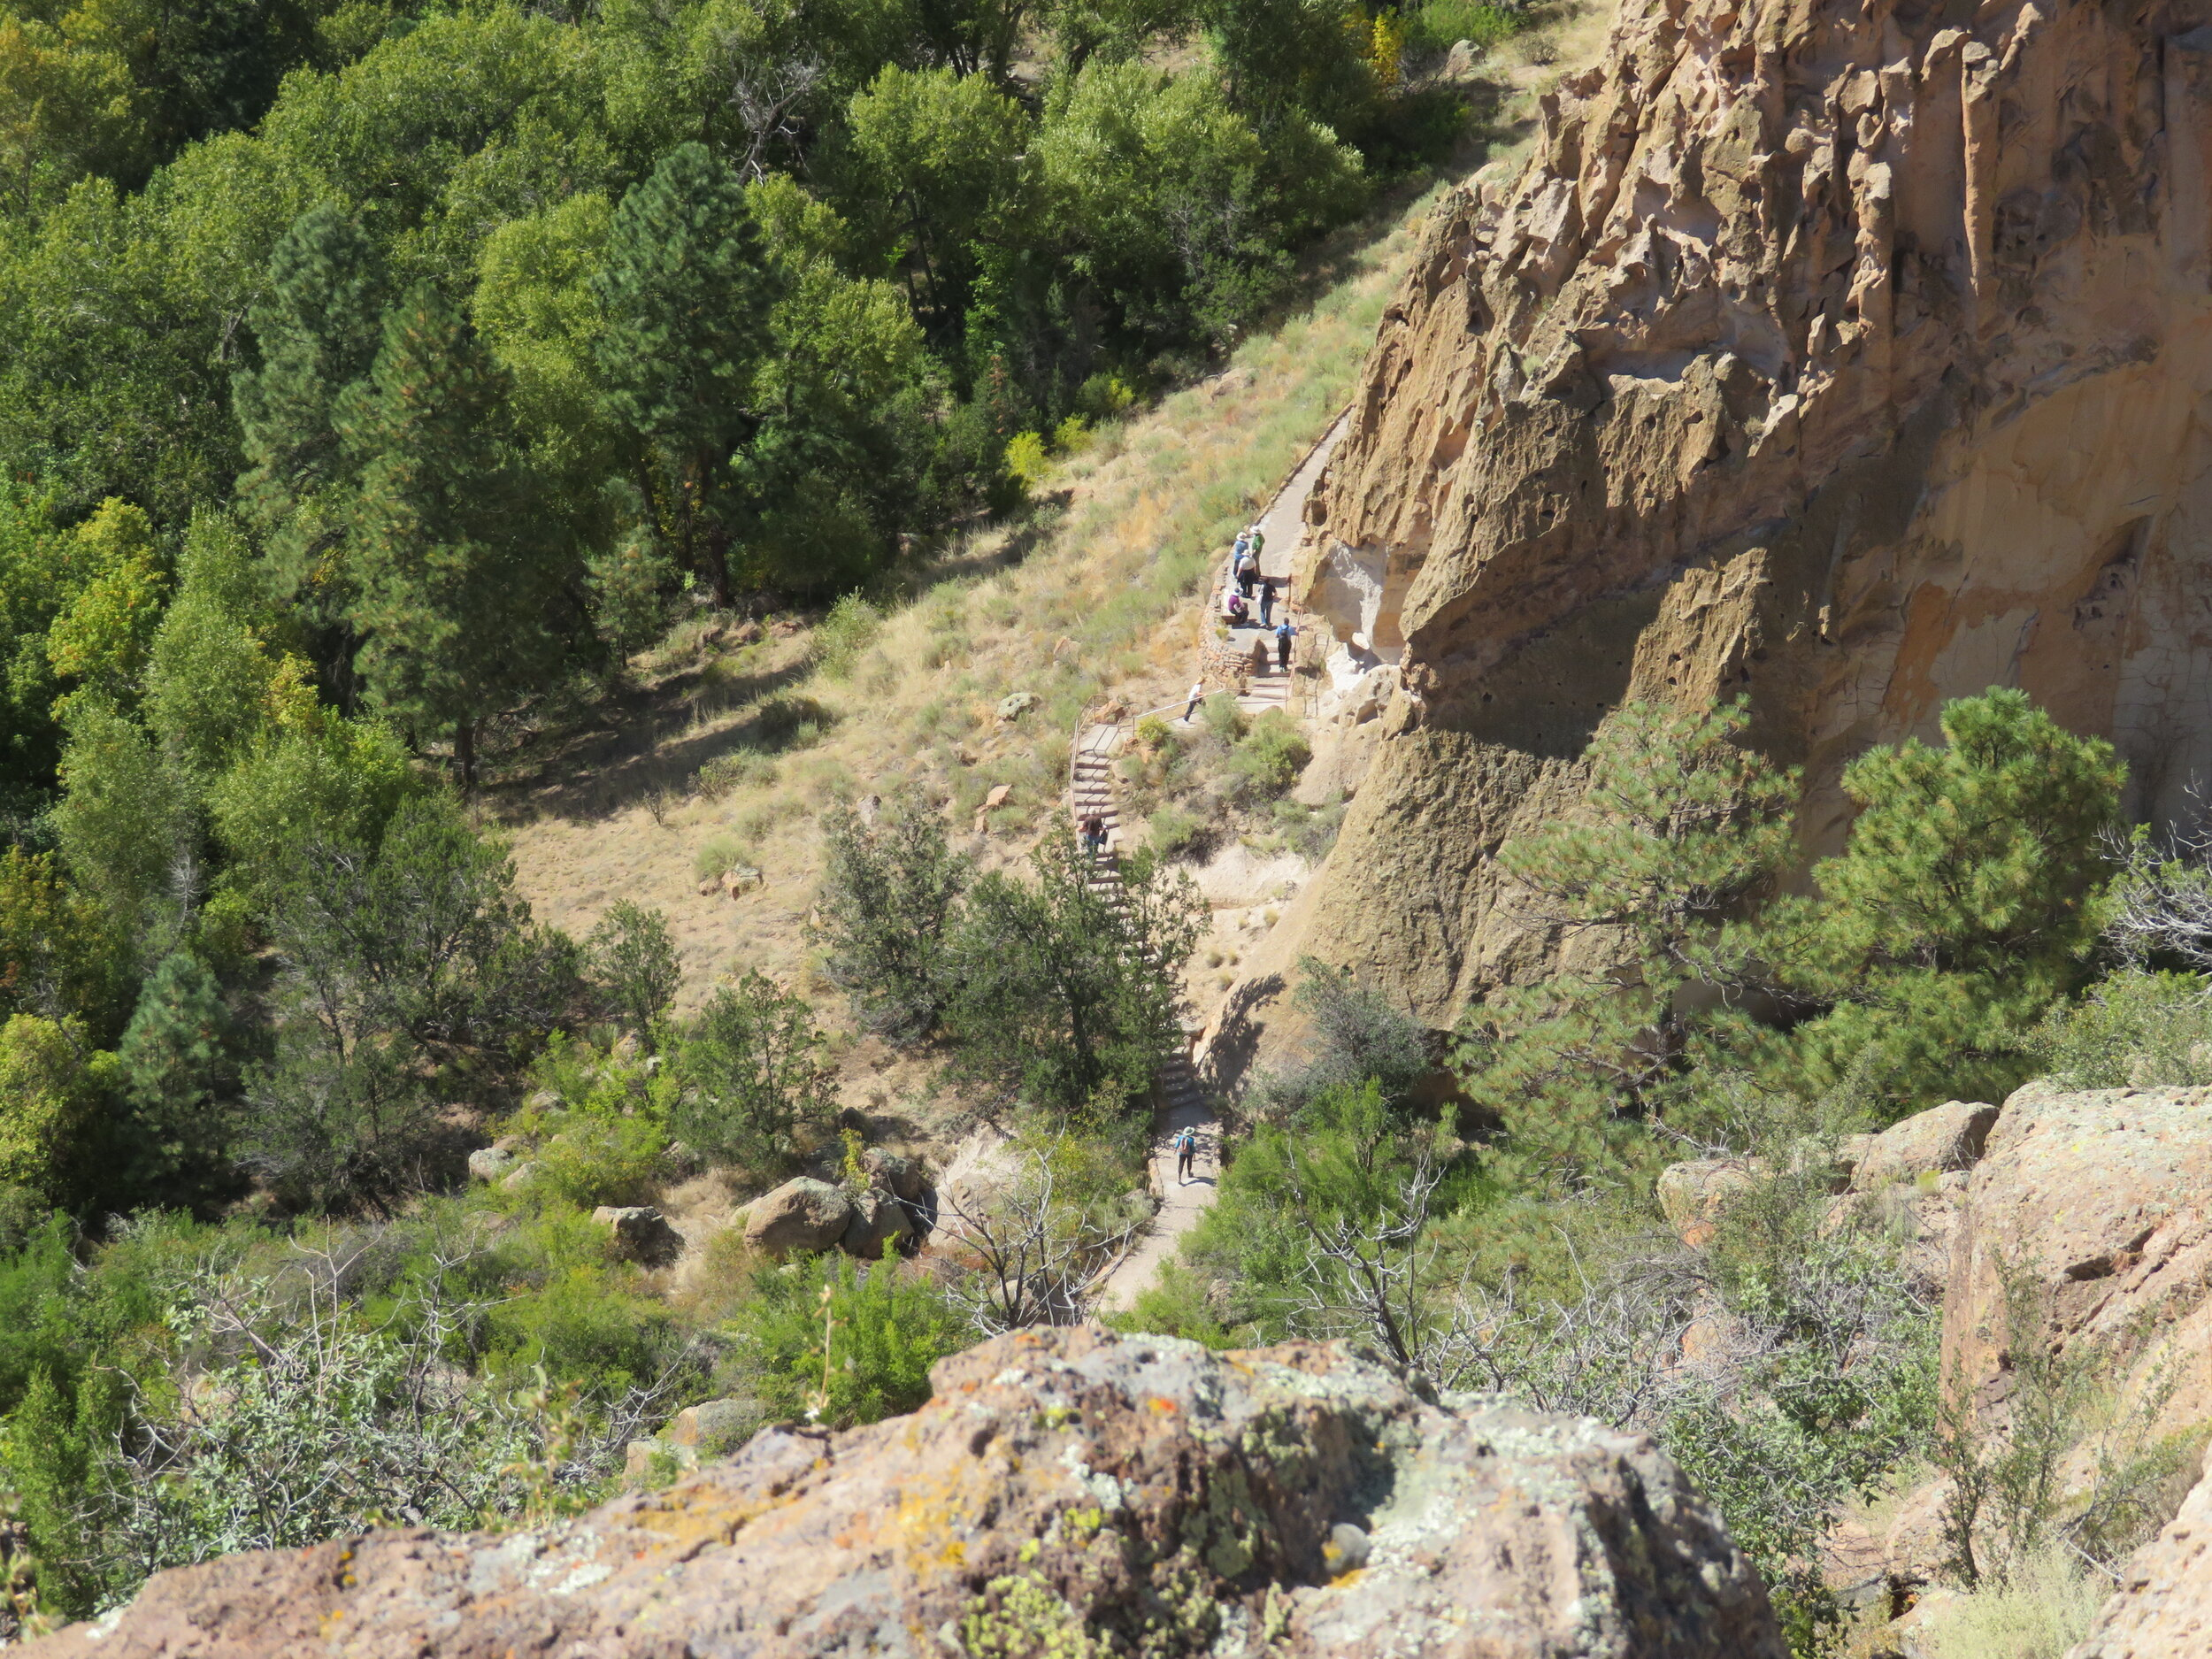 Steep switchbacks led us down to the Frijoles Canyon and the Visitor's Center